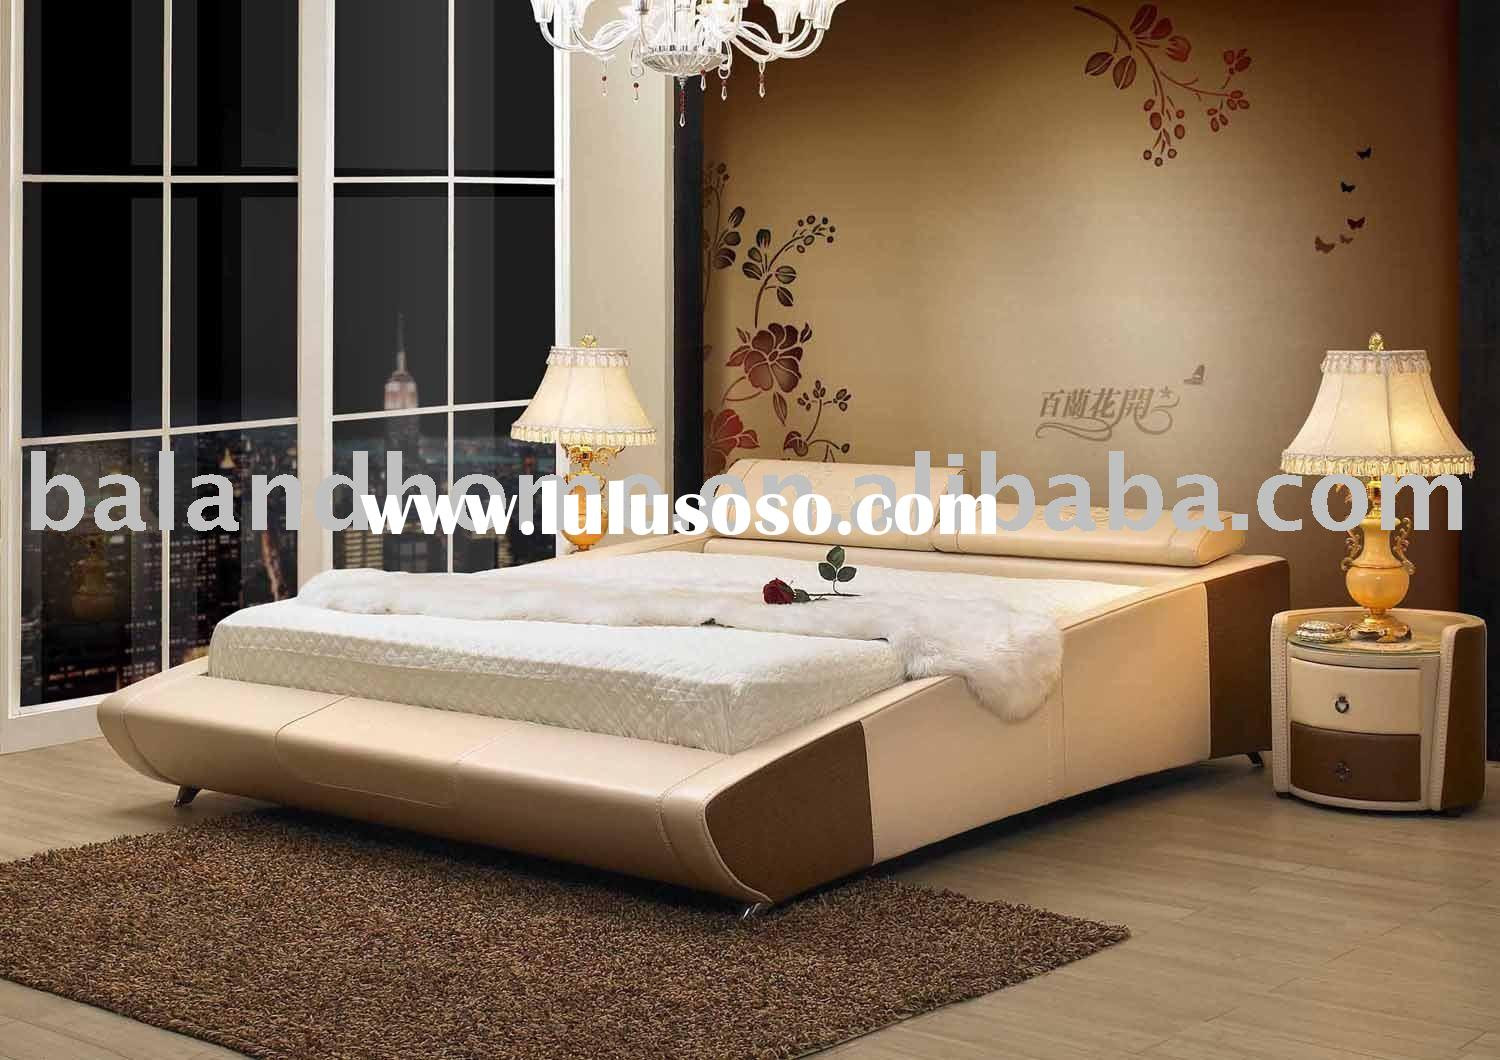 round bed mattress bedding, round bed mattress bedding ...